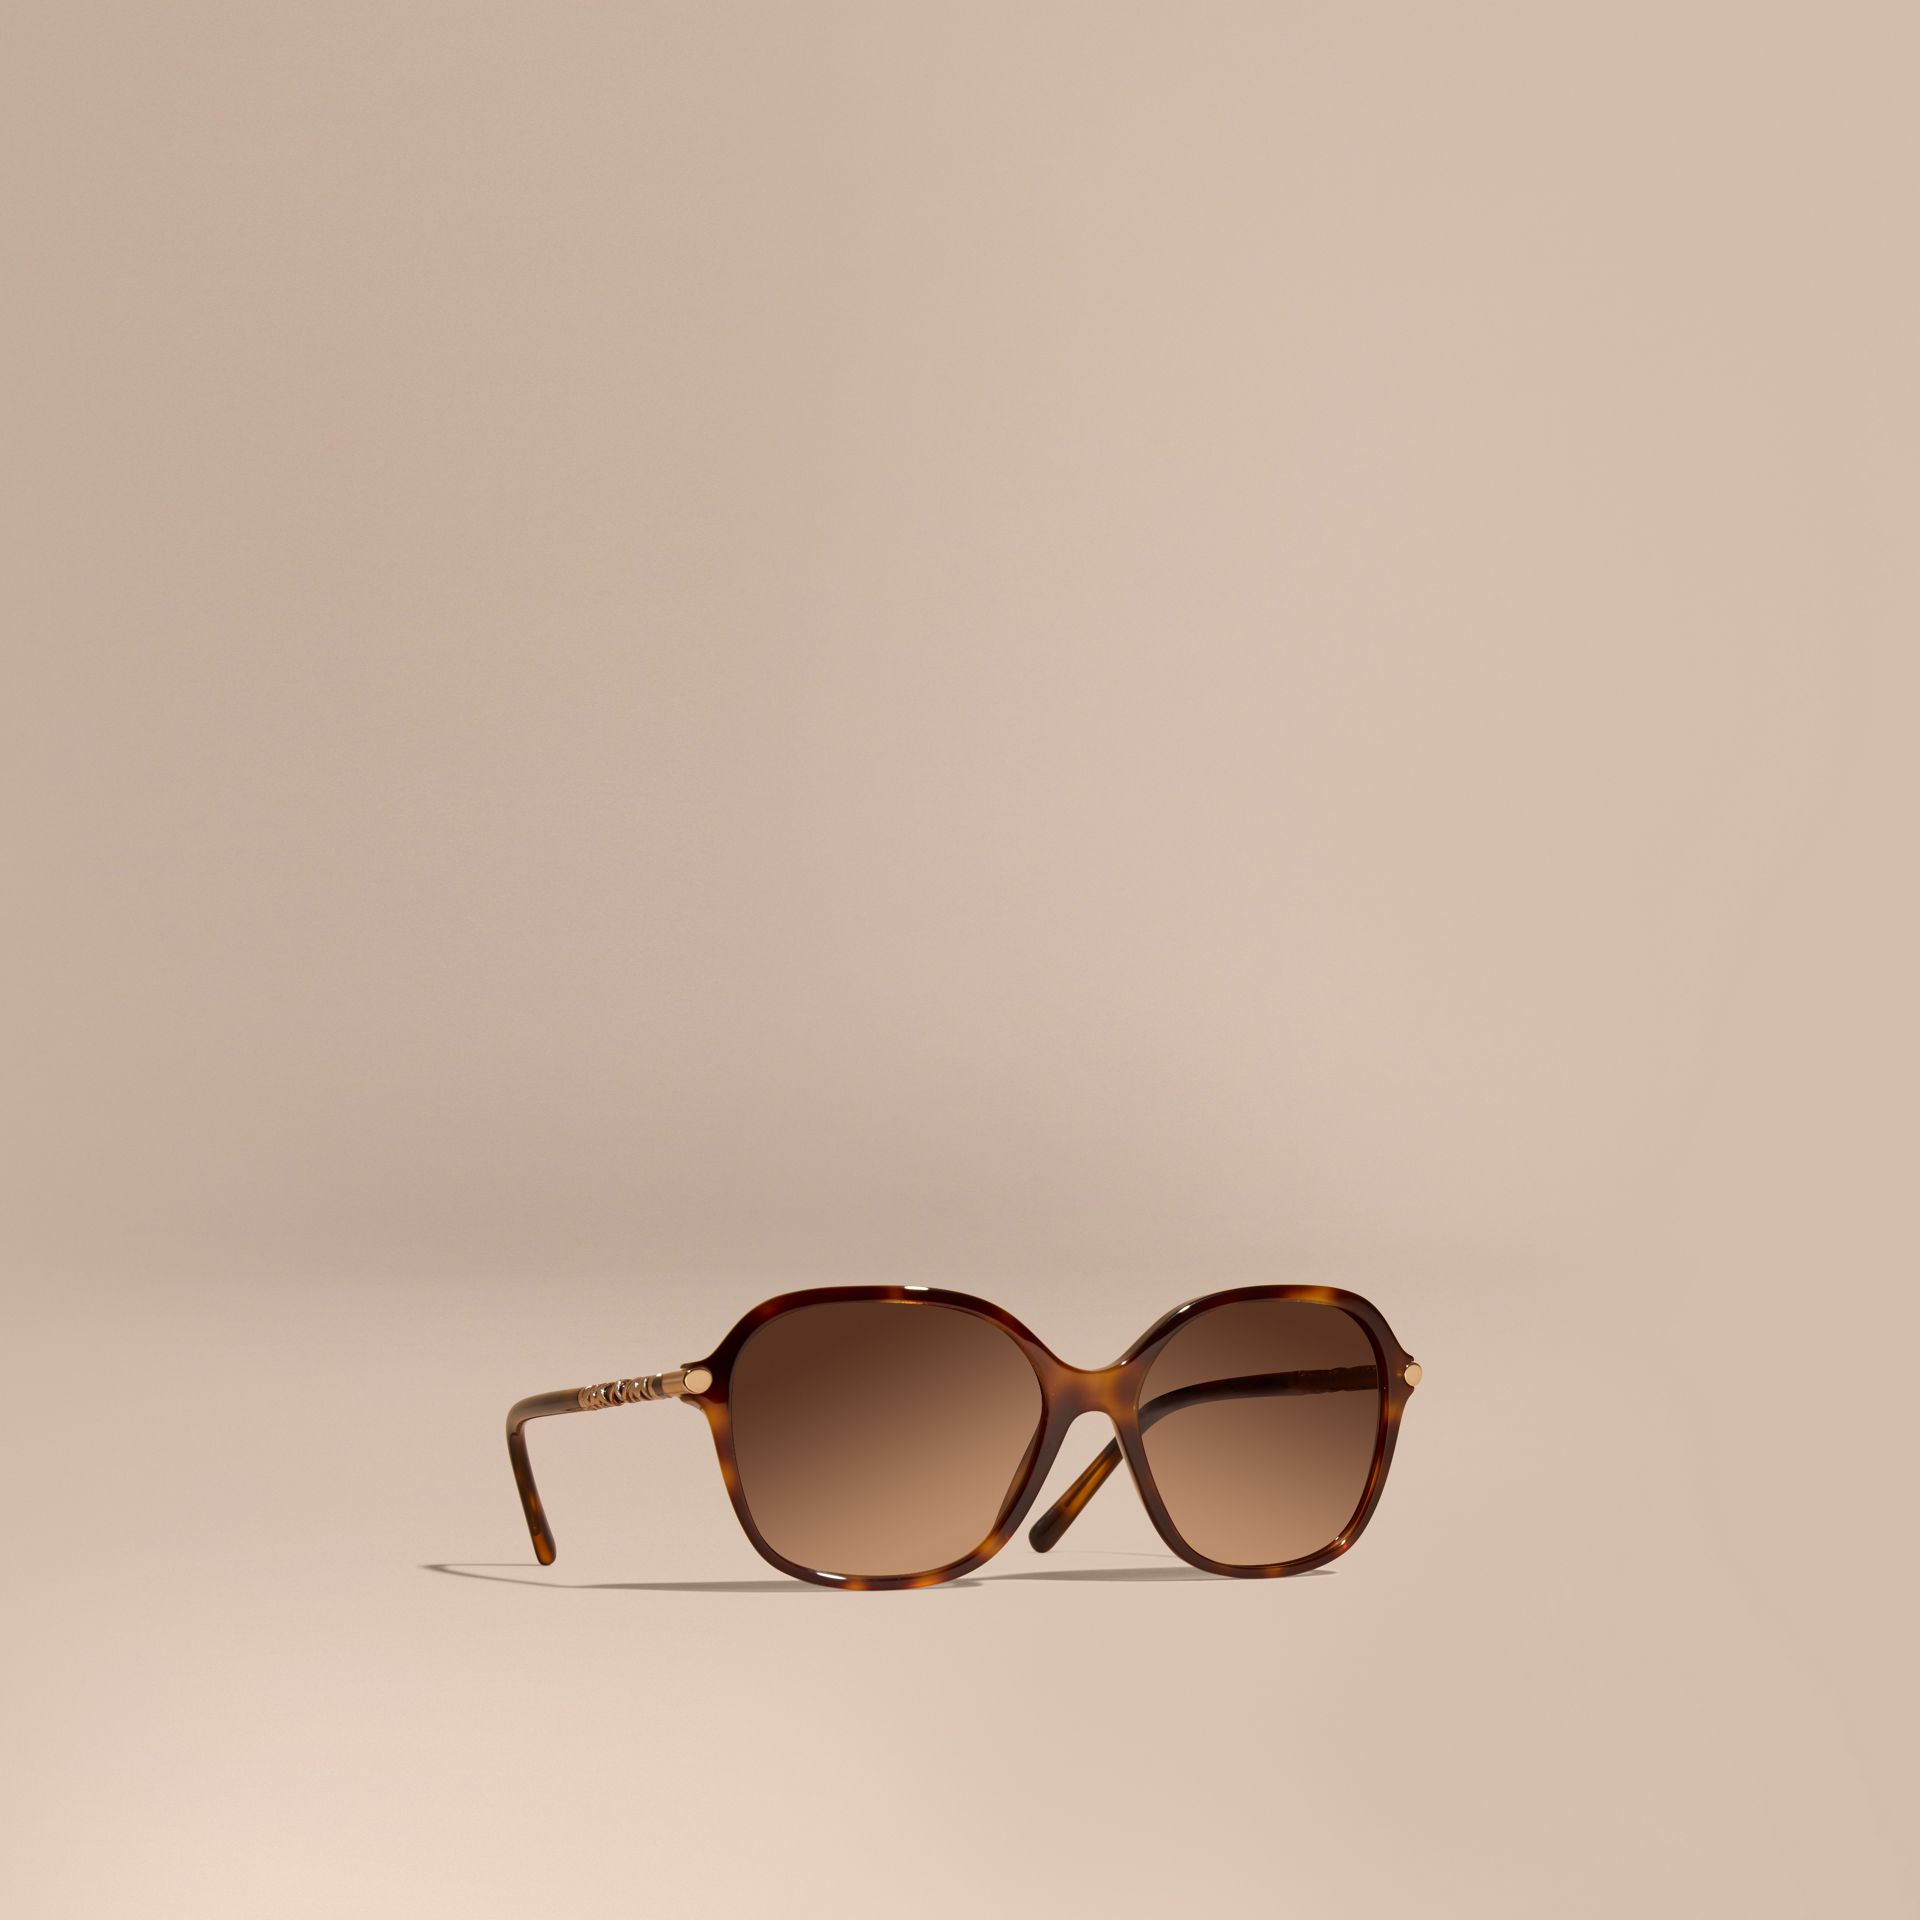 Light russet brown Check Detail Round Frame Sunglasses Light Russet Brown - gallery image 1